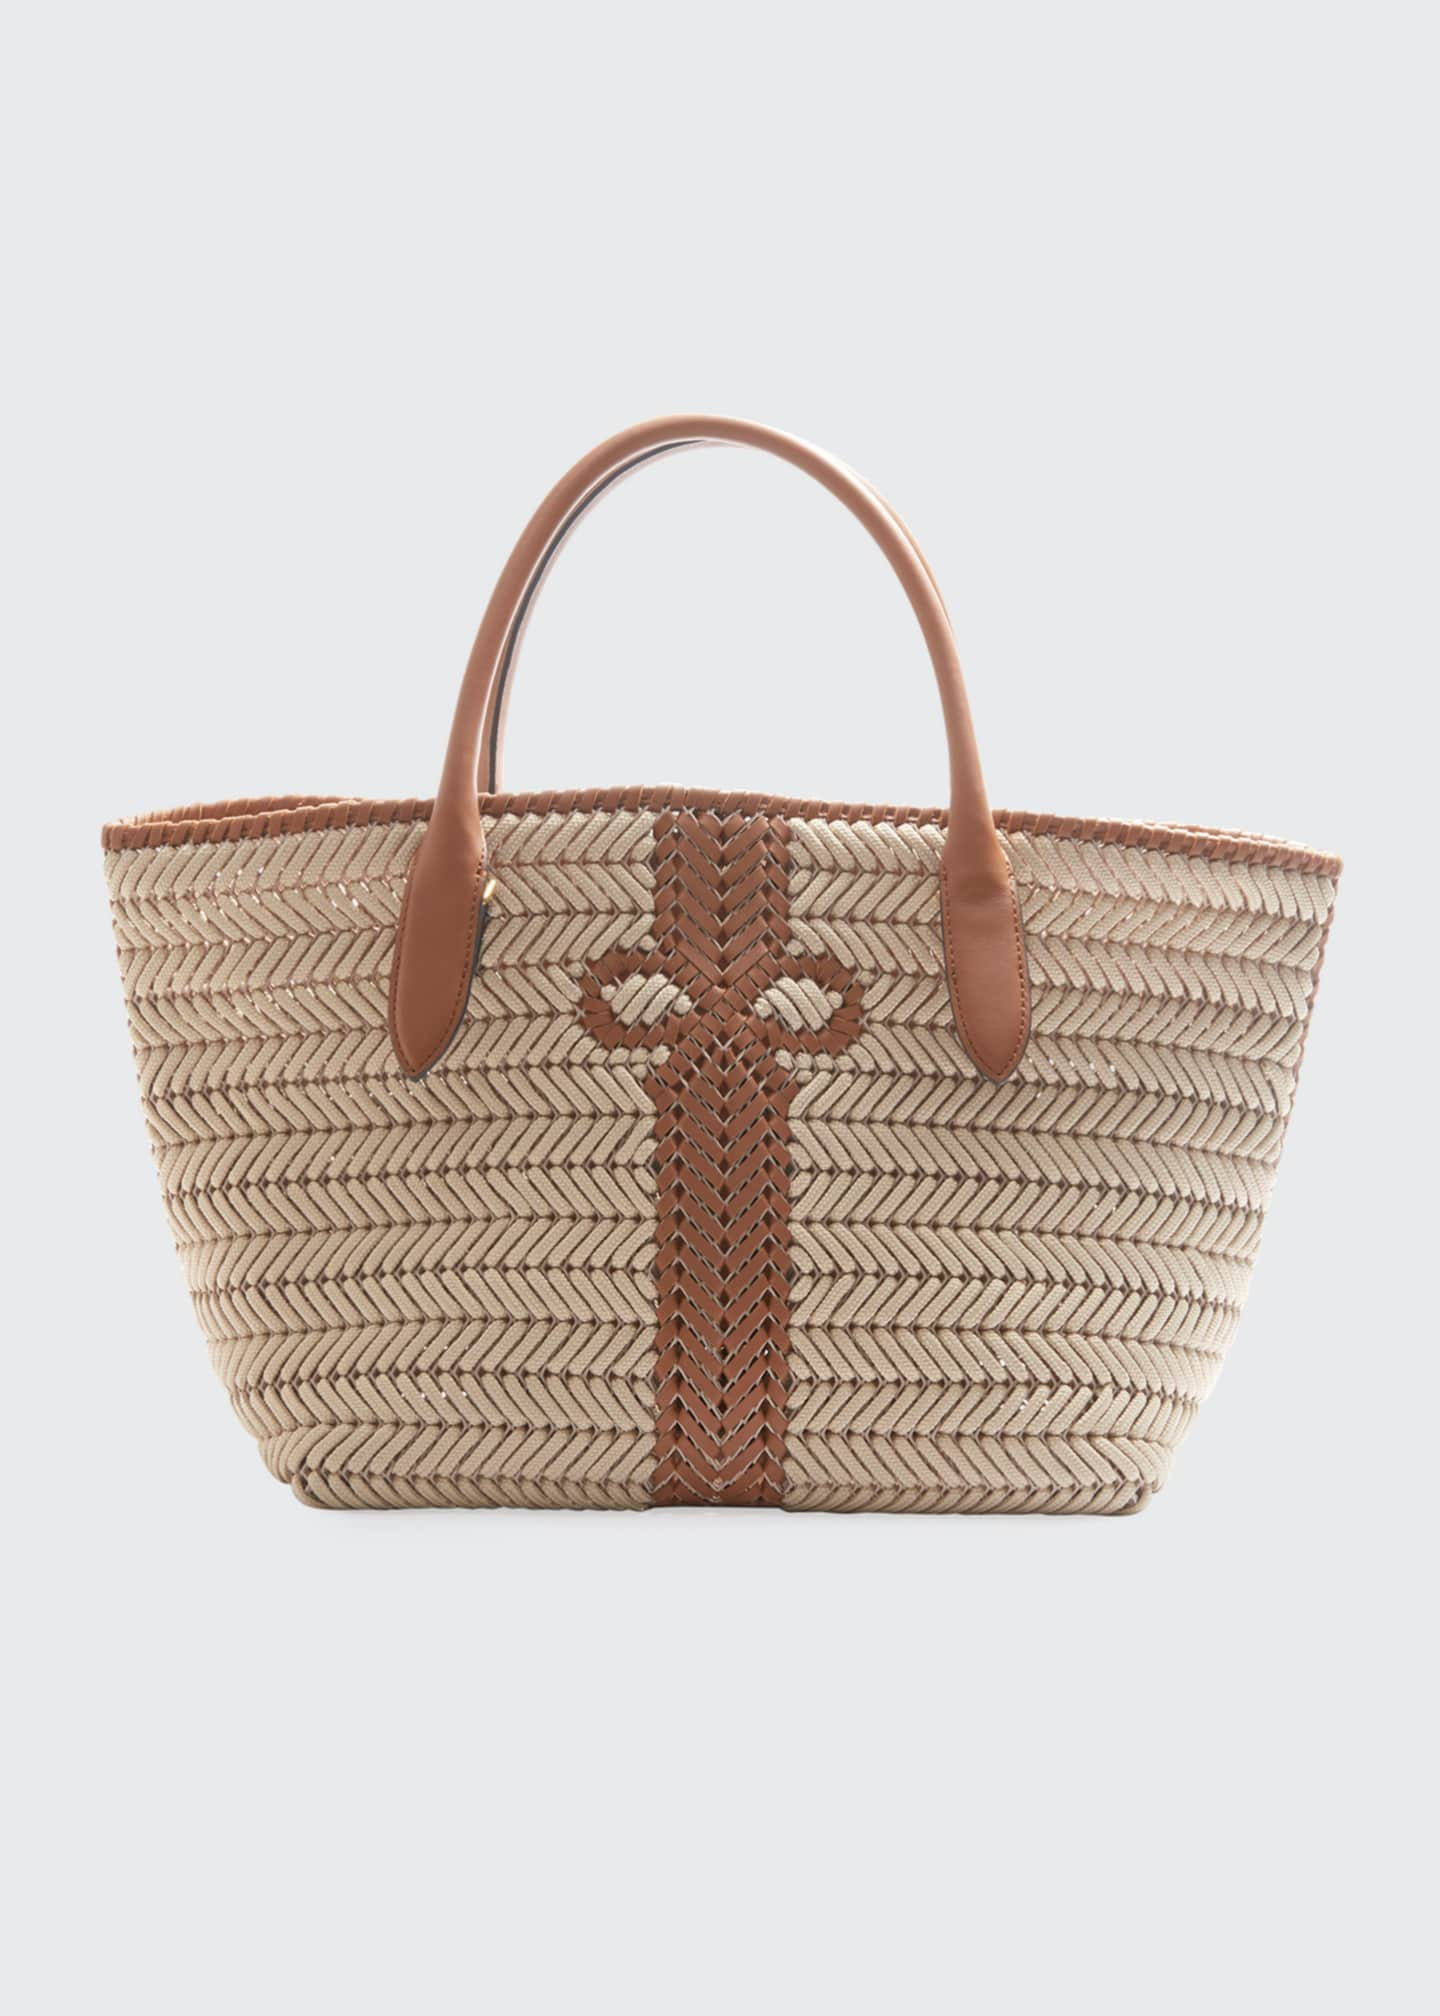 Image 1 of 3: The Neeson Woven Rope Tote Bag